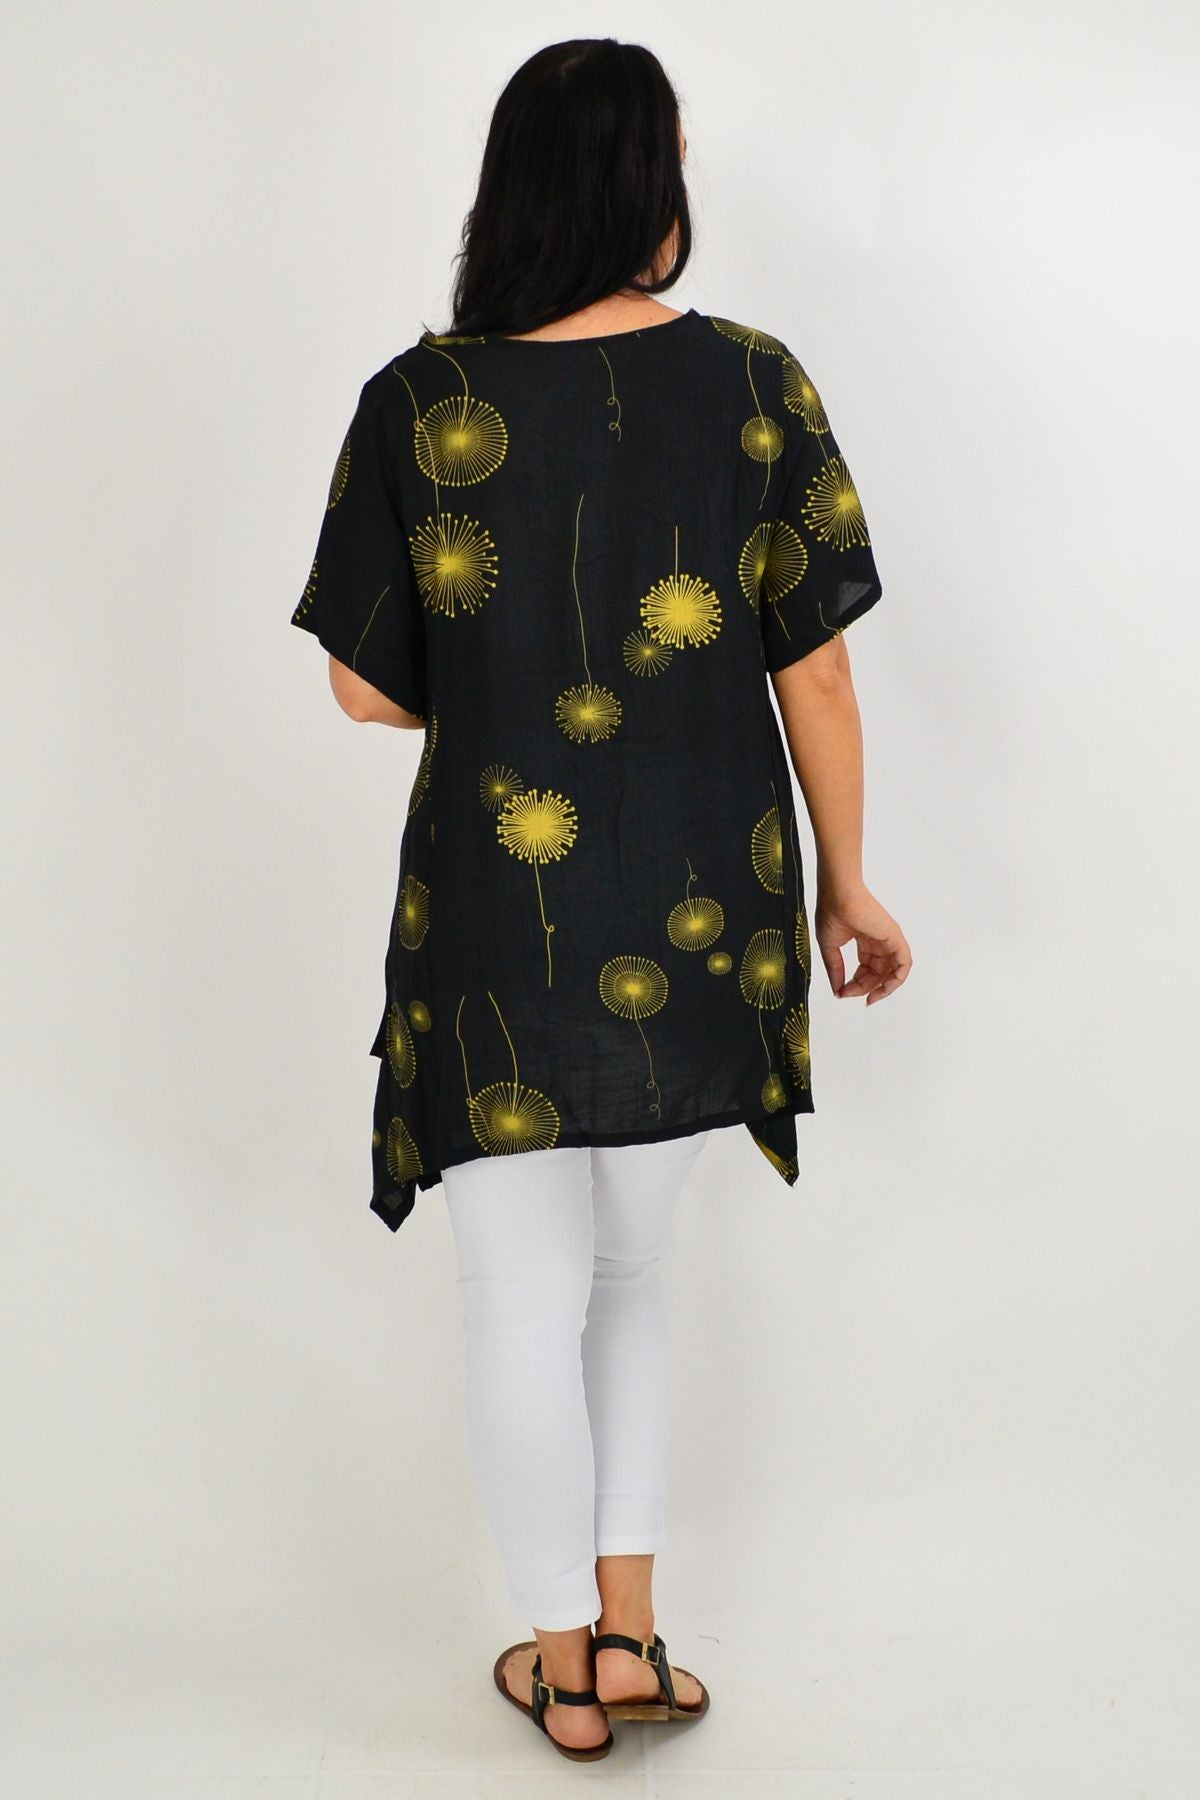 Black Dandelion Wish Tunic Top - I Love Tunics